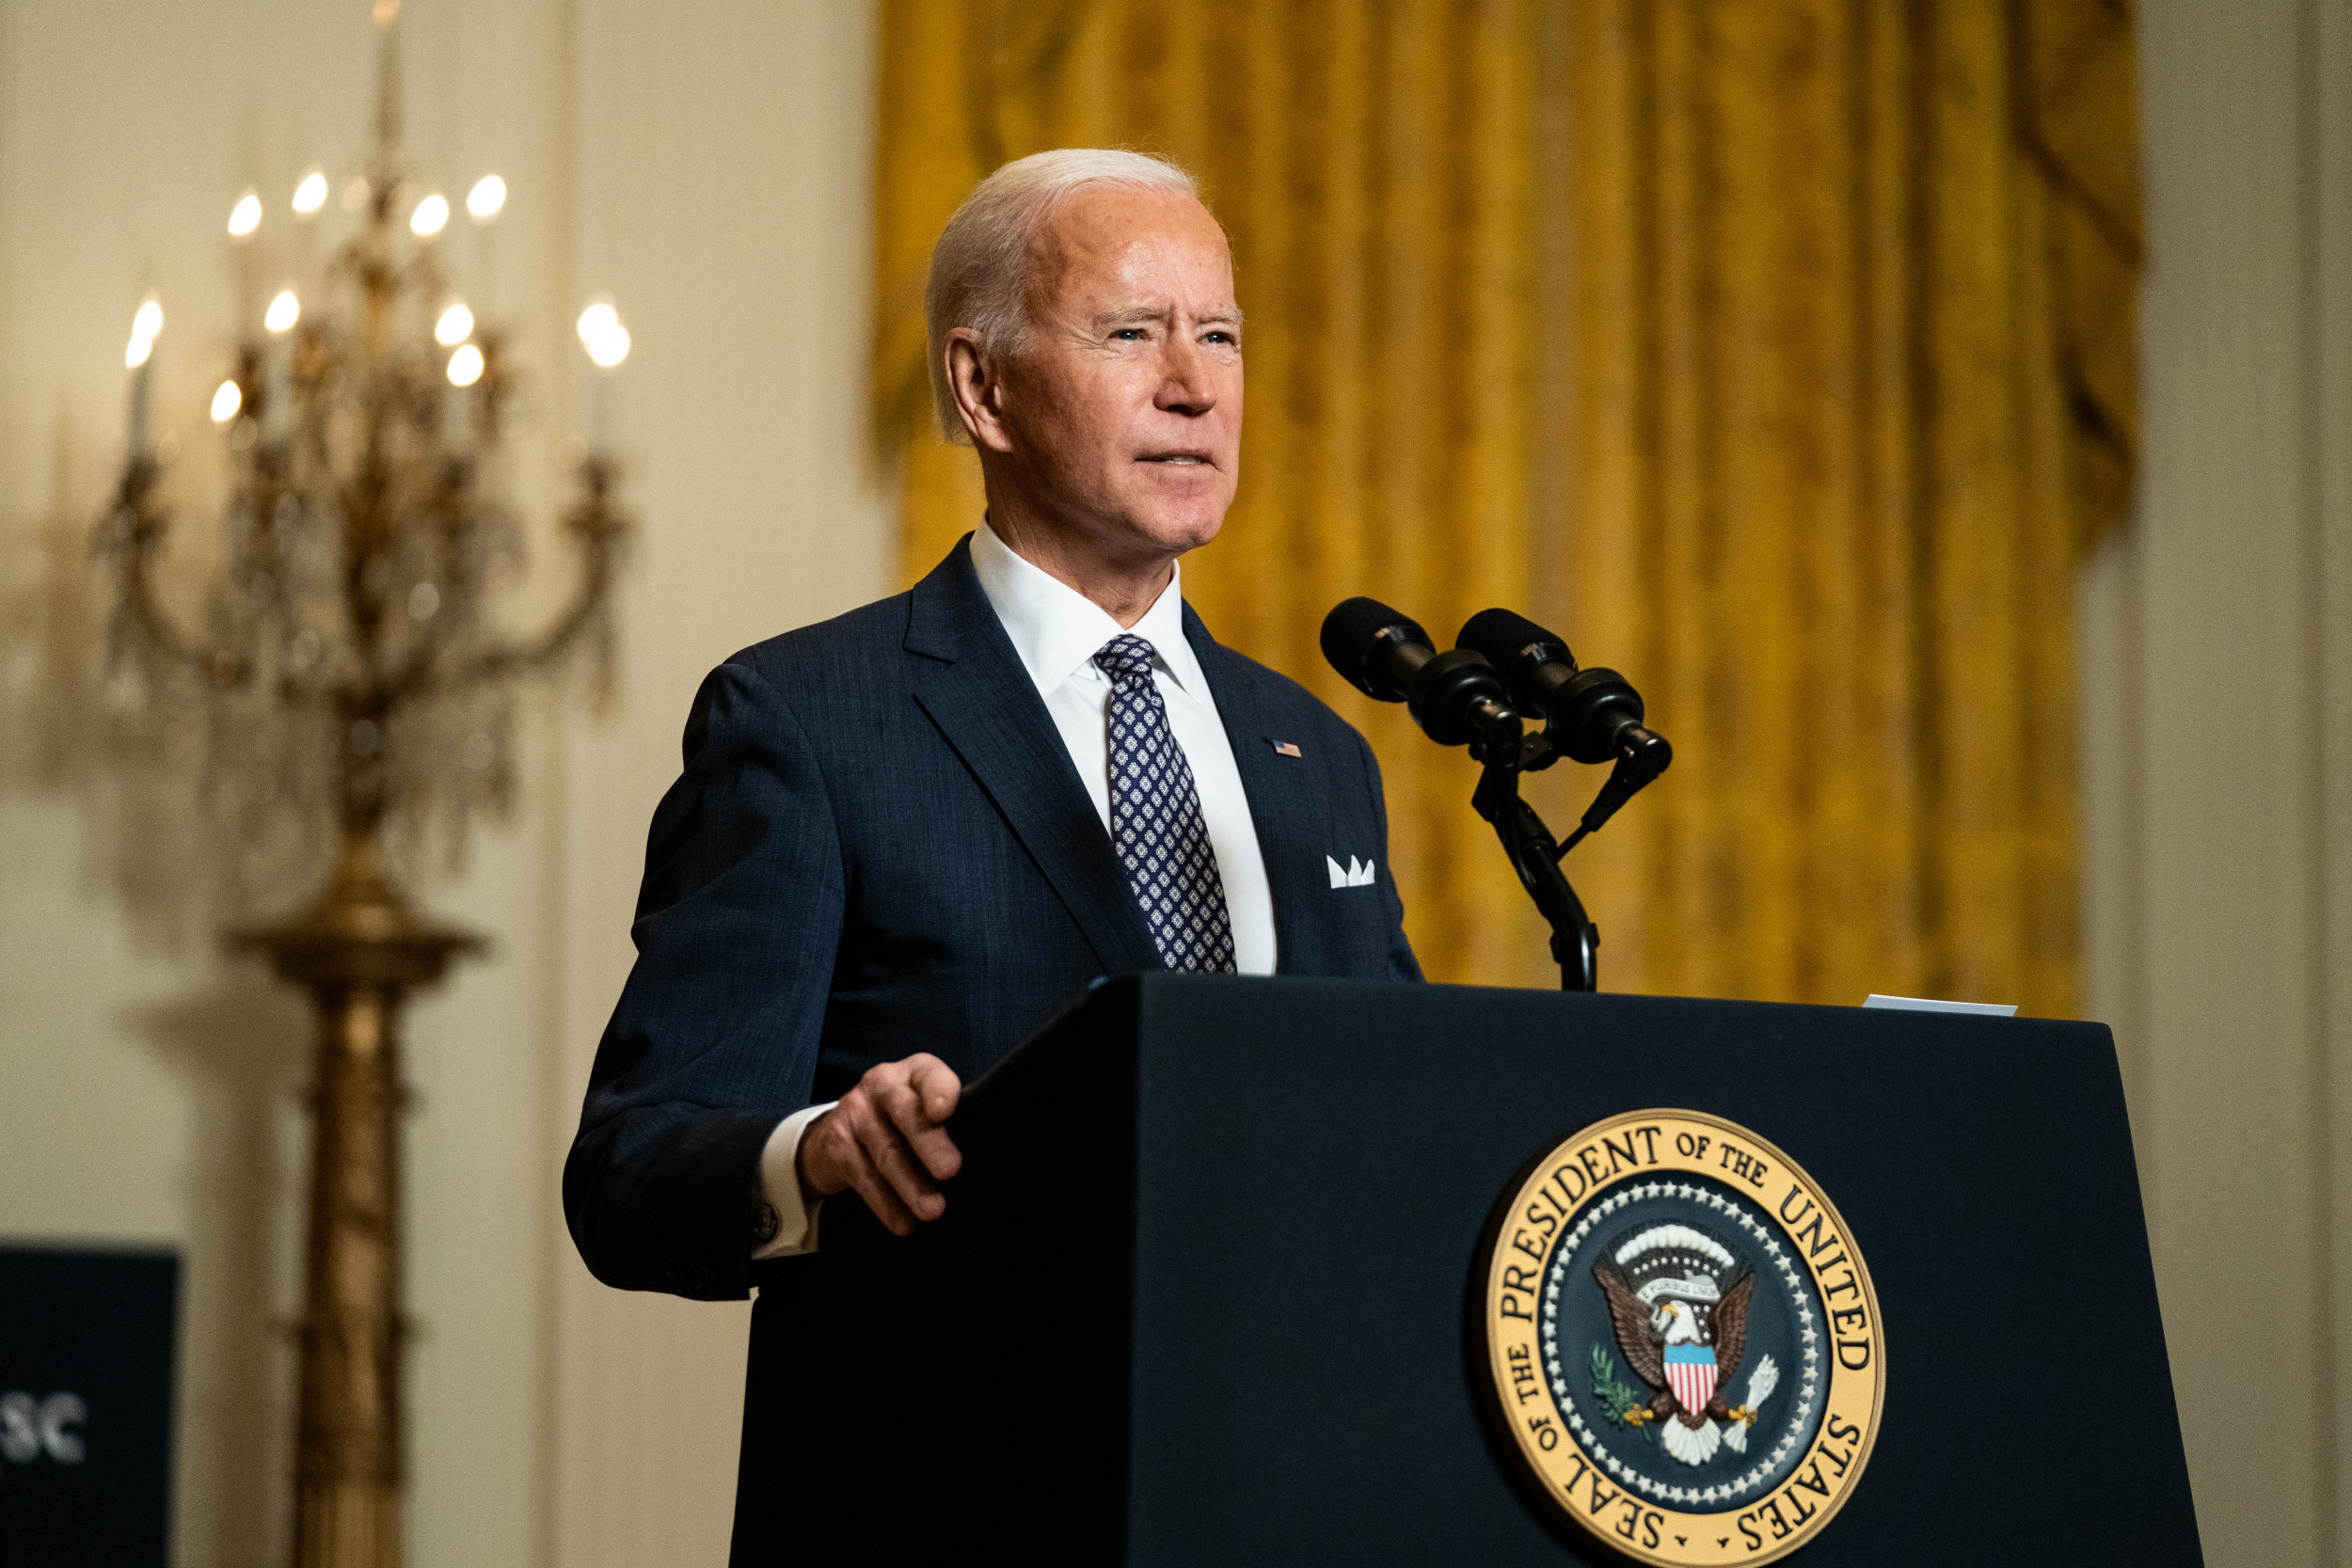 Over 50 Percent of Americans Approve of Biden's Performance During His First Month in Office thumbnail